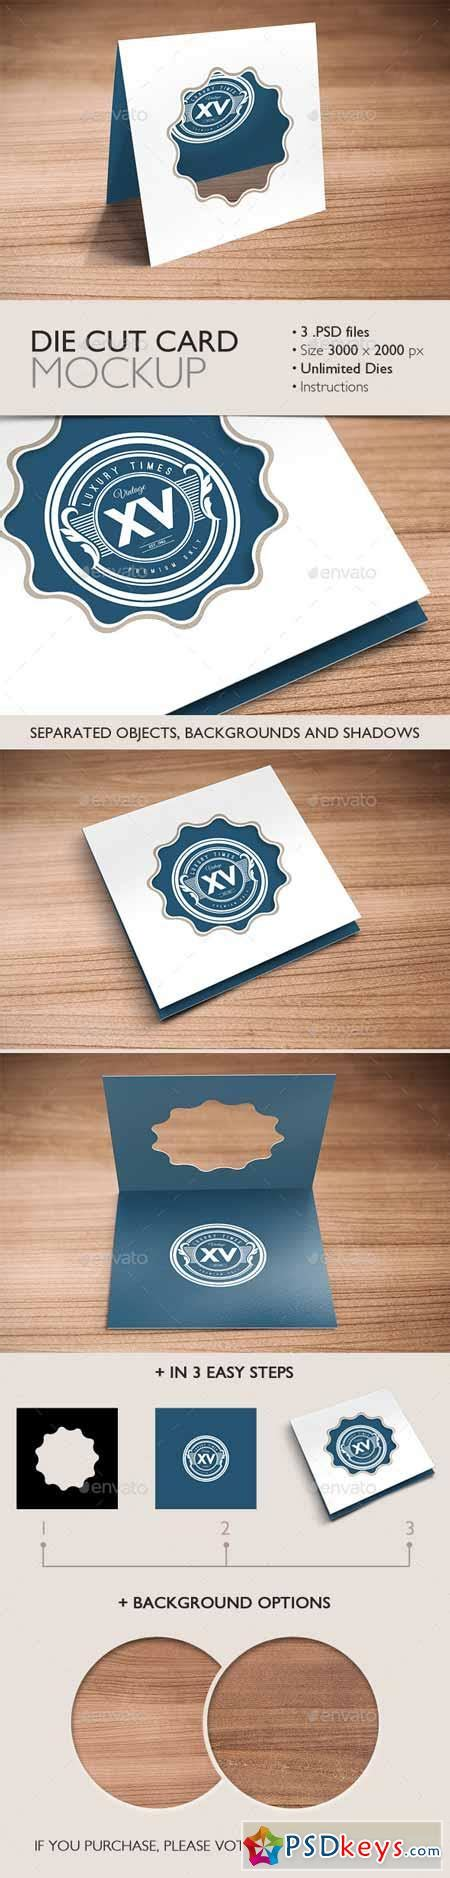 die cut cards for card die cut card mockup 9598594 187 free photoshop